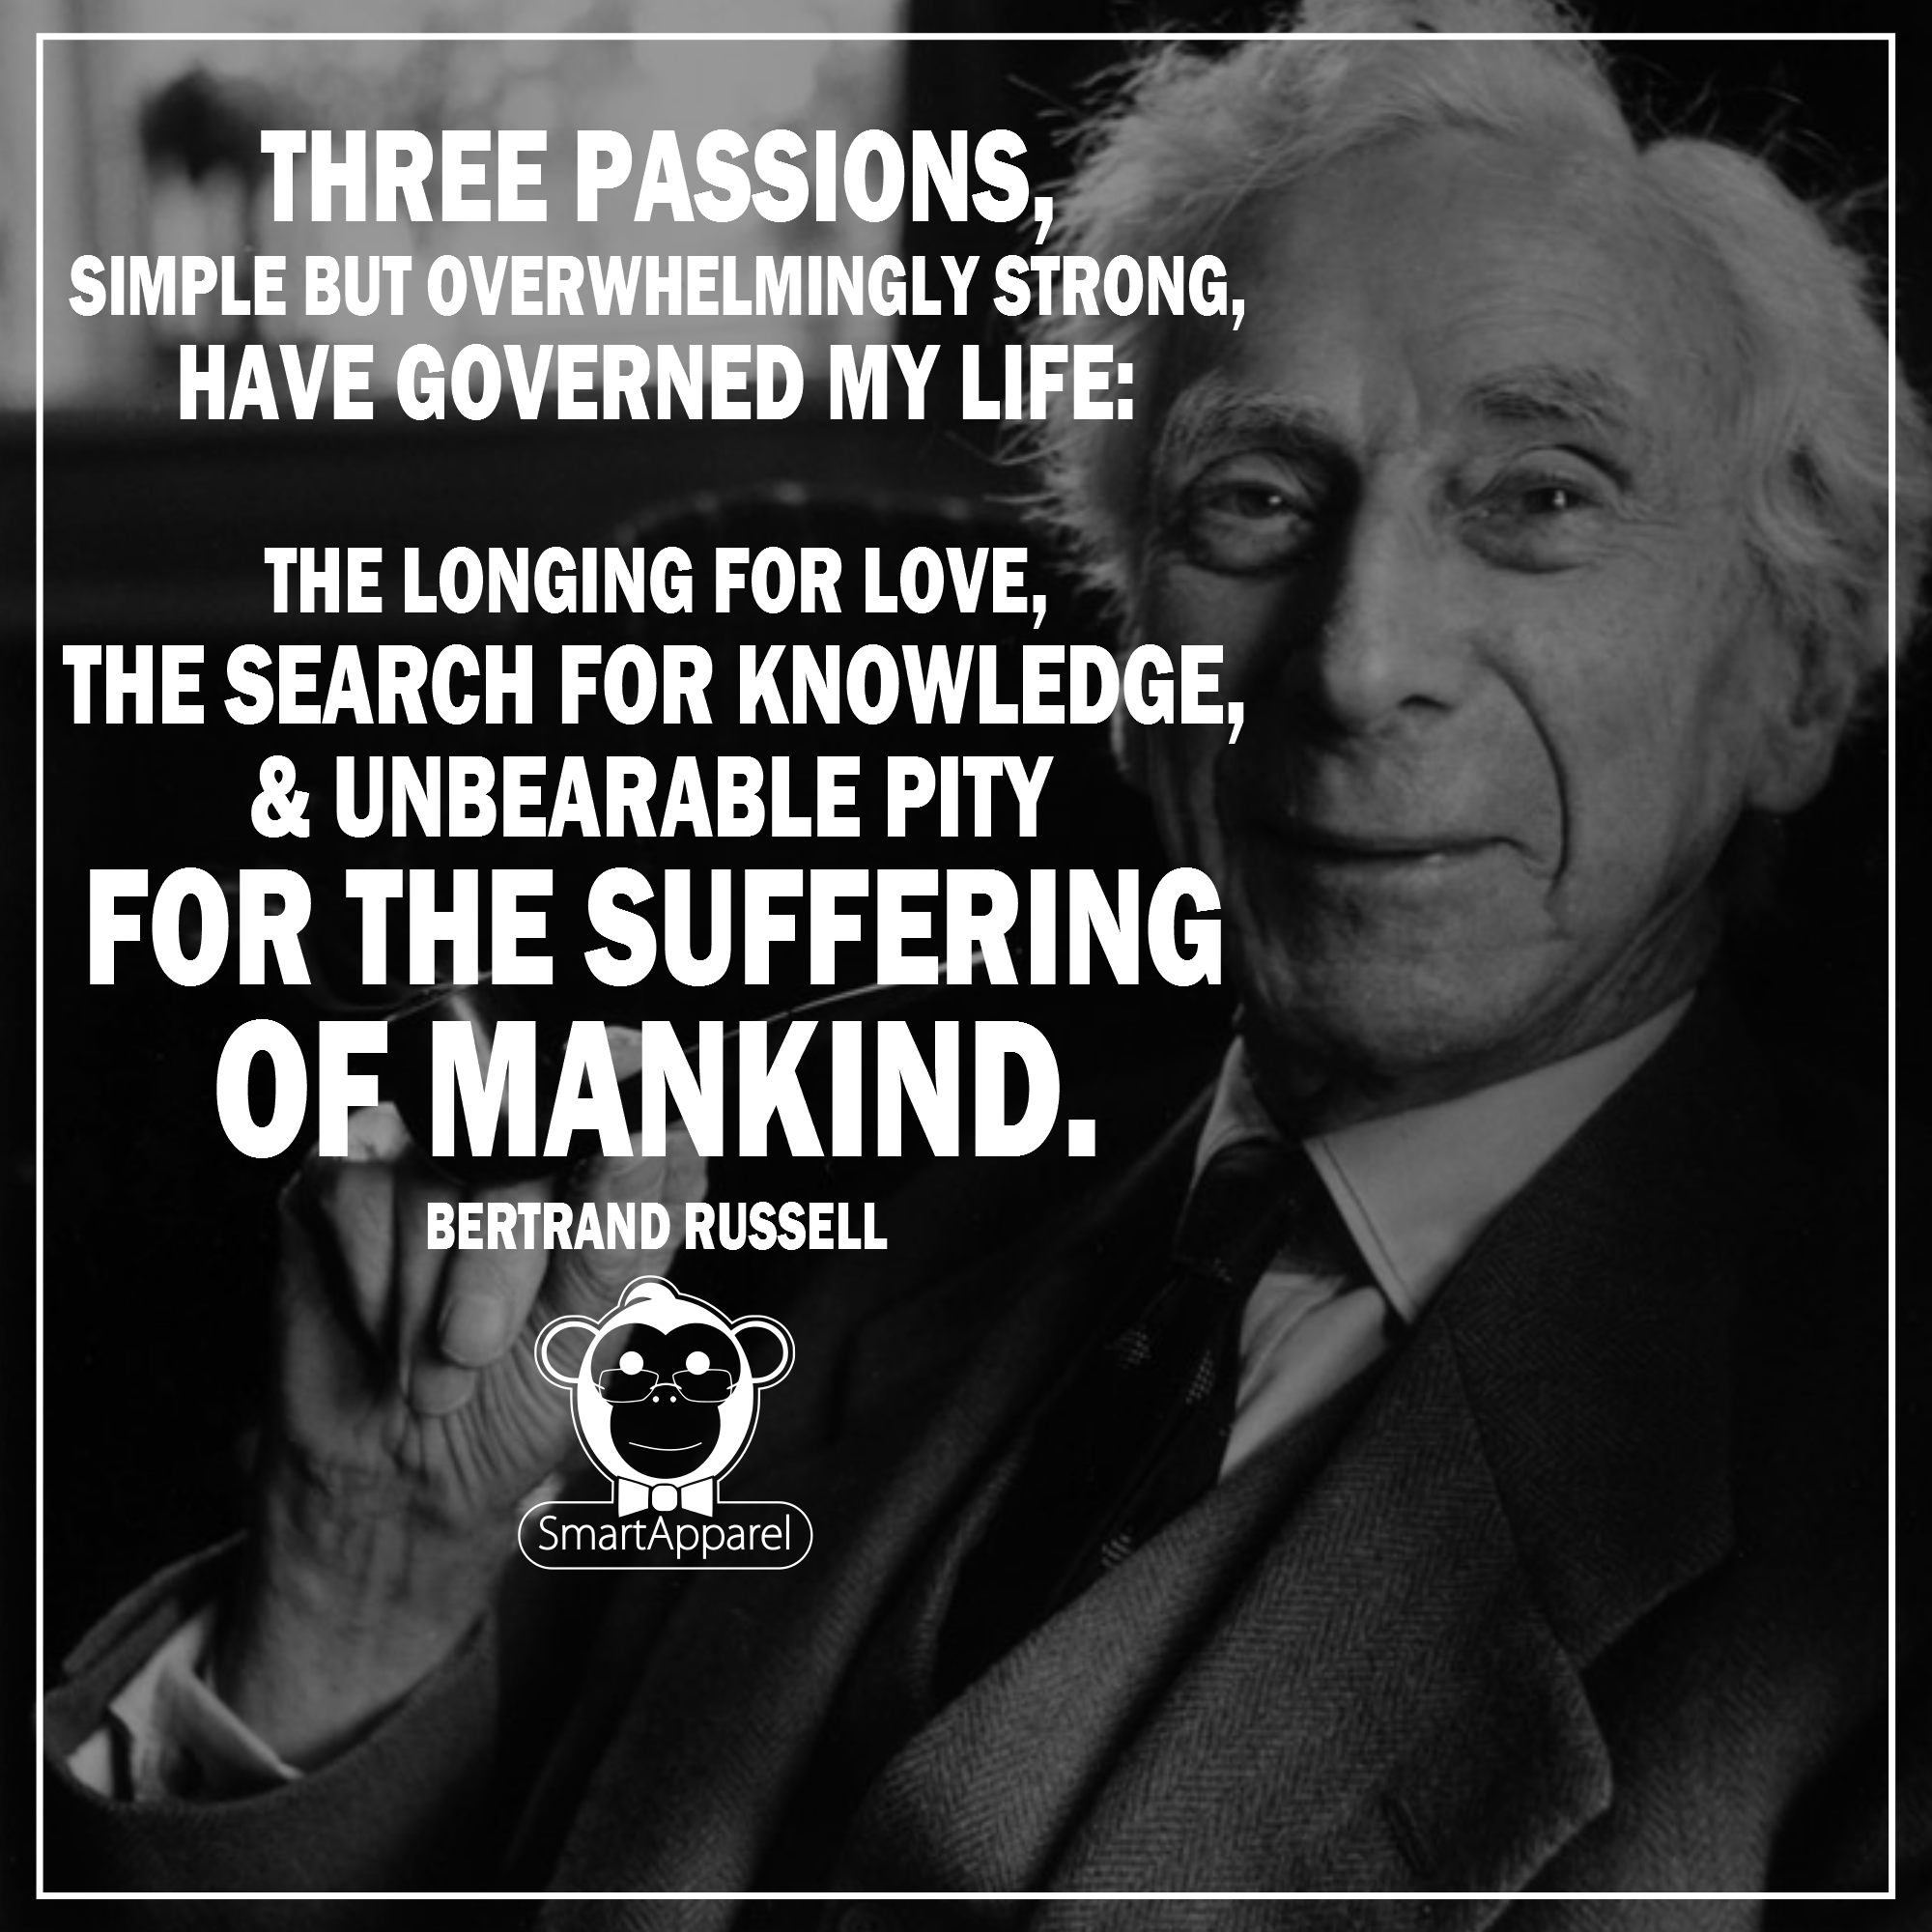 Philosophers Quotes On The Meaning Of Life Philosophy Bertrandrussell Www.smartappareltees  Science